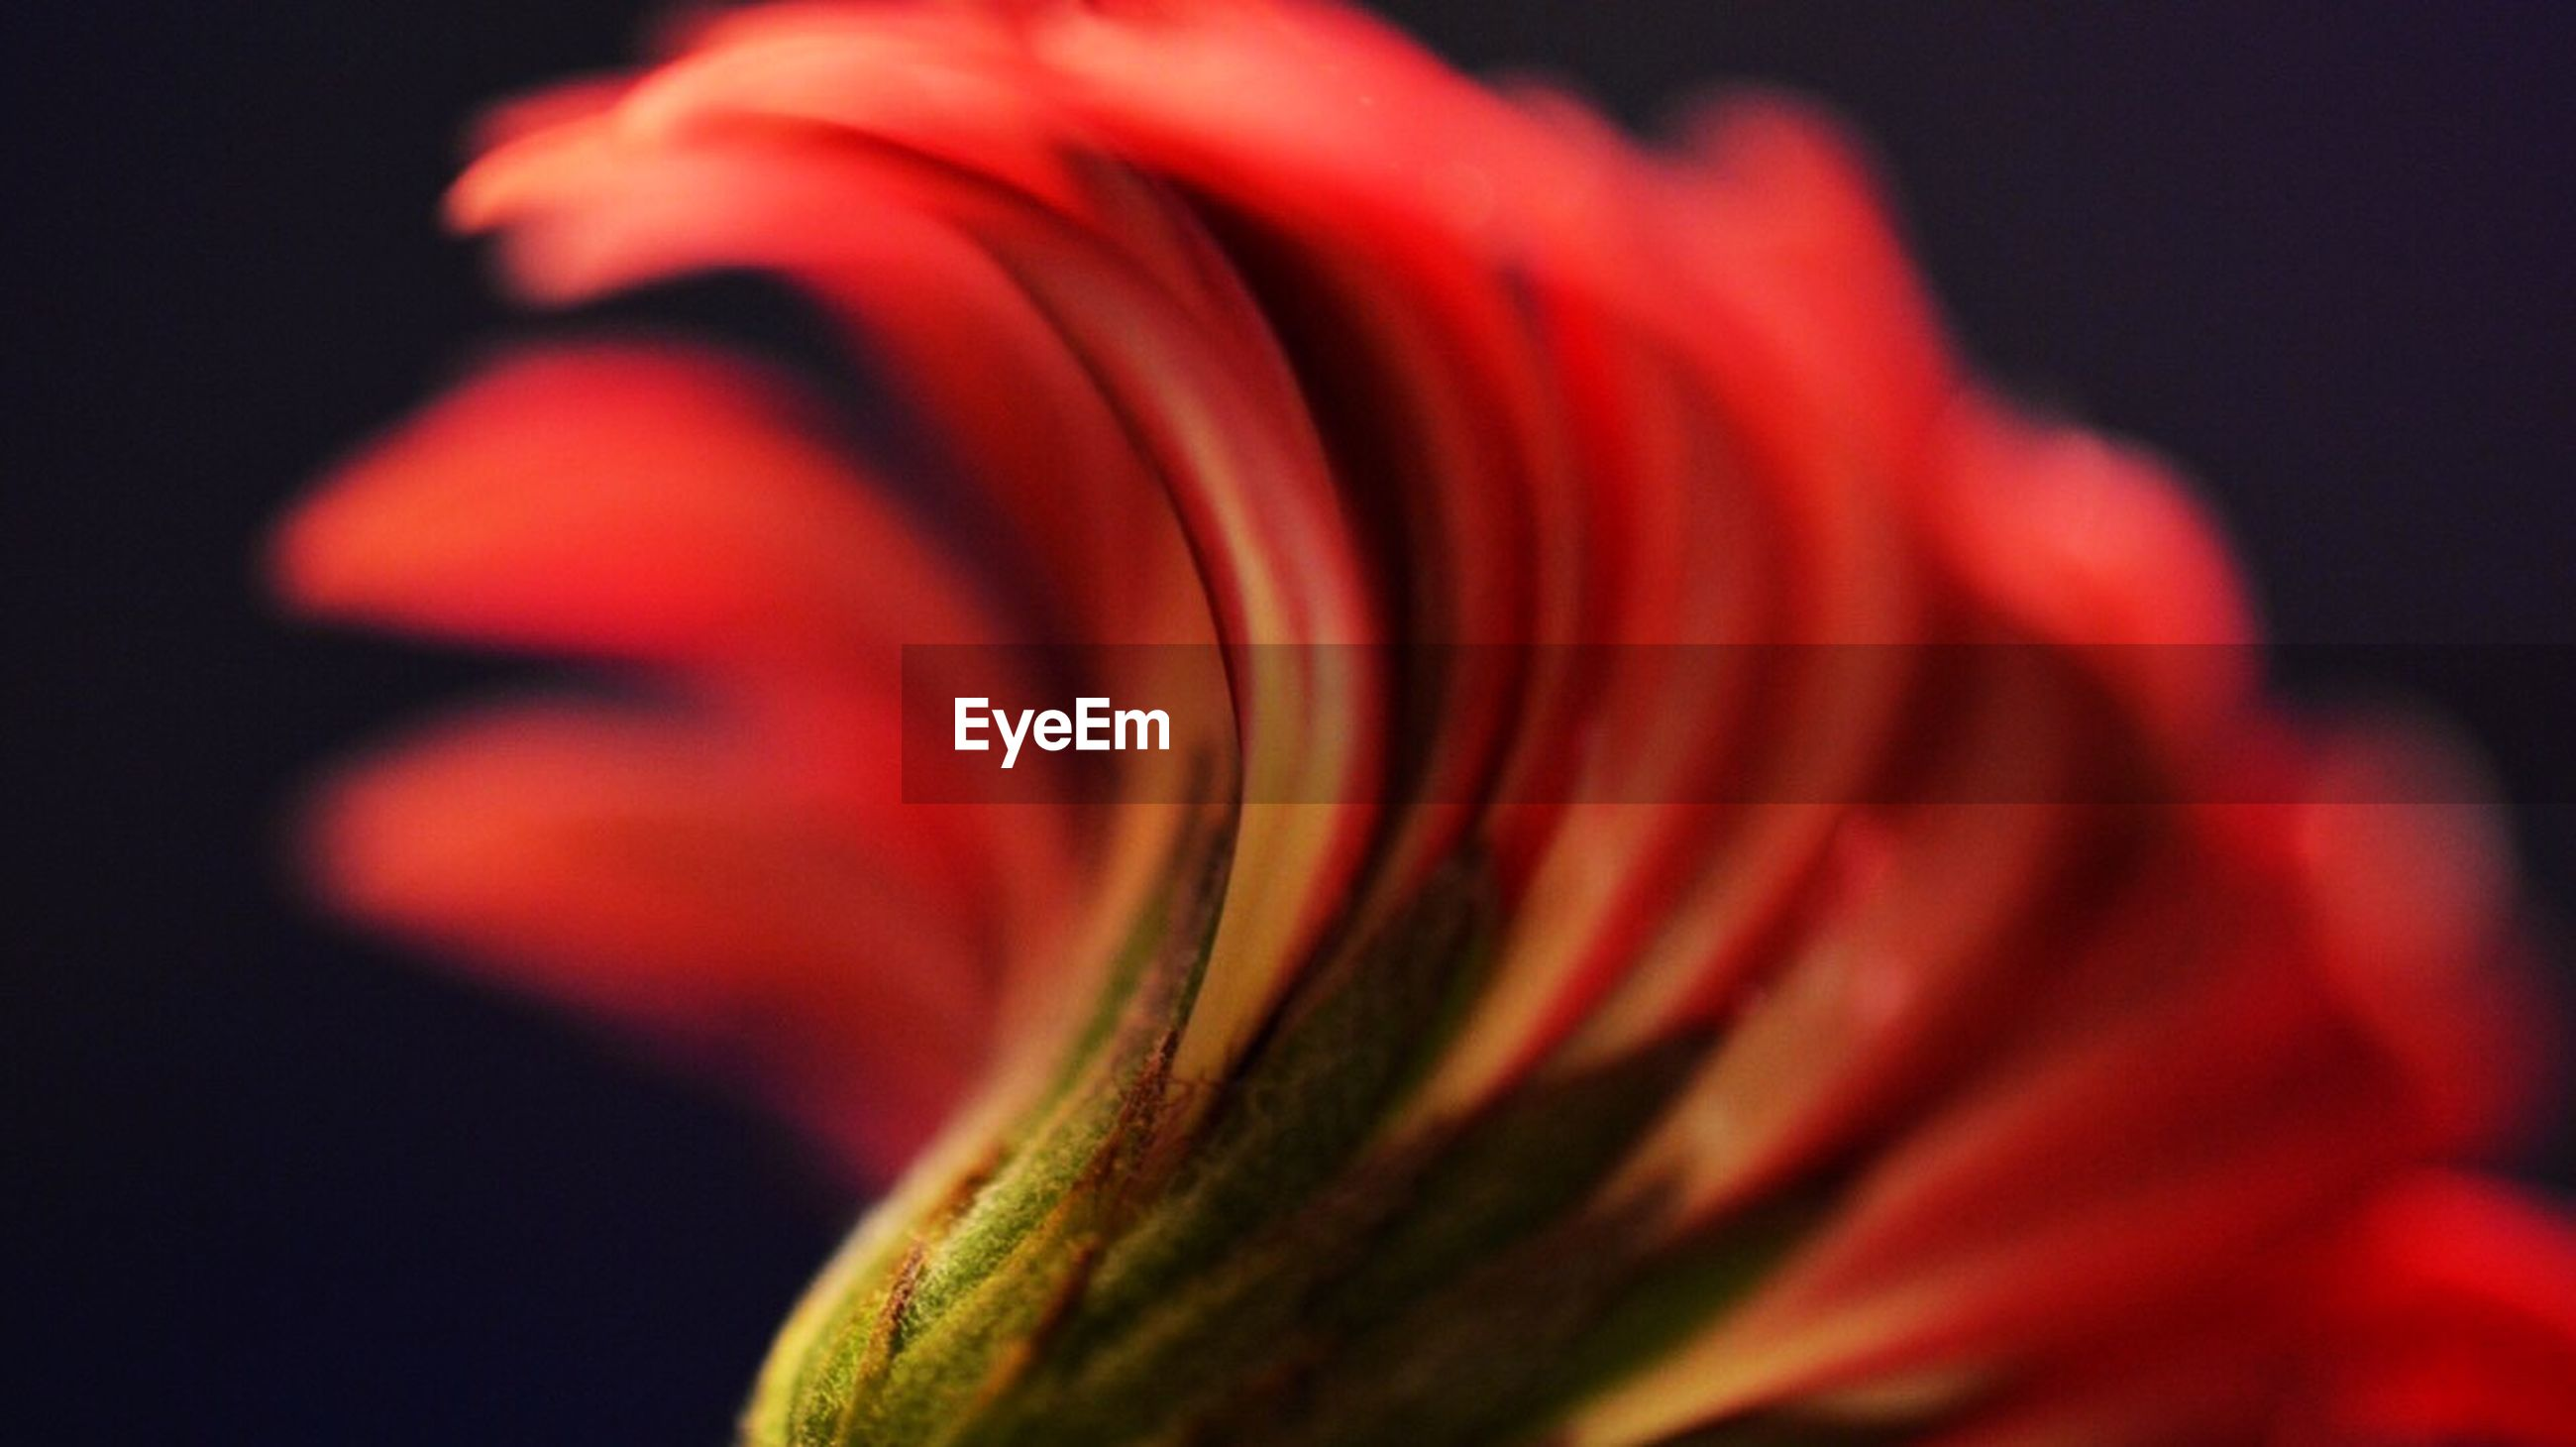 flower, fragility, petal, beauty in nature, freshness, red, flower head, nature, close-up, growth, no people, indoors, black background, day